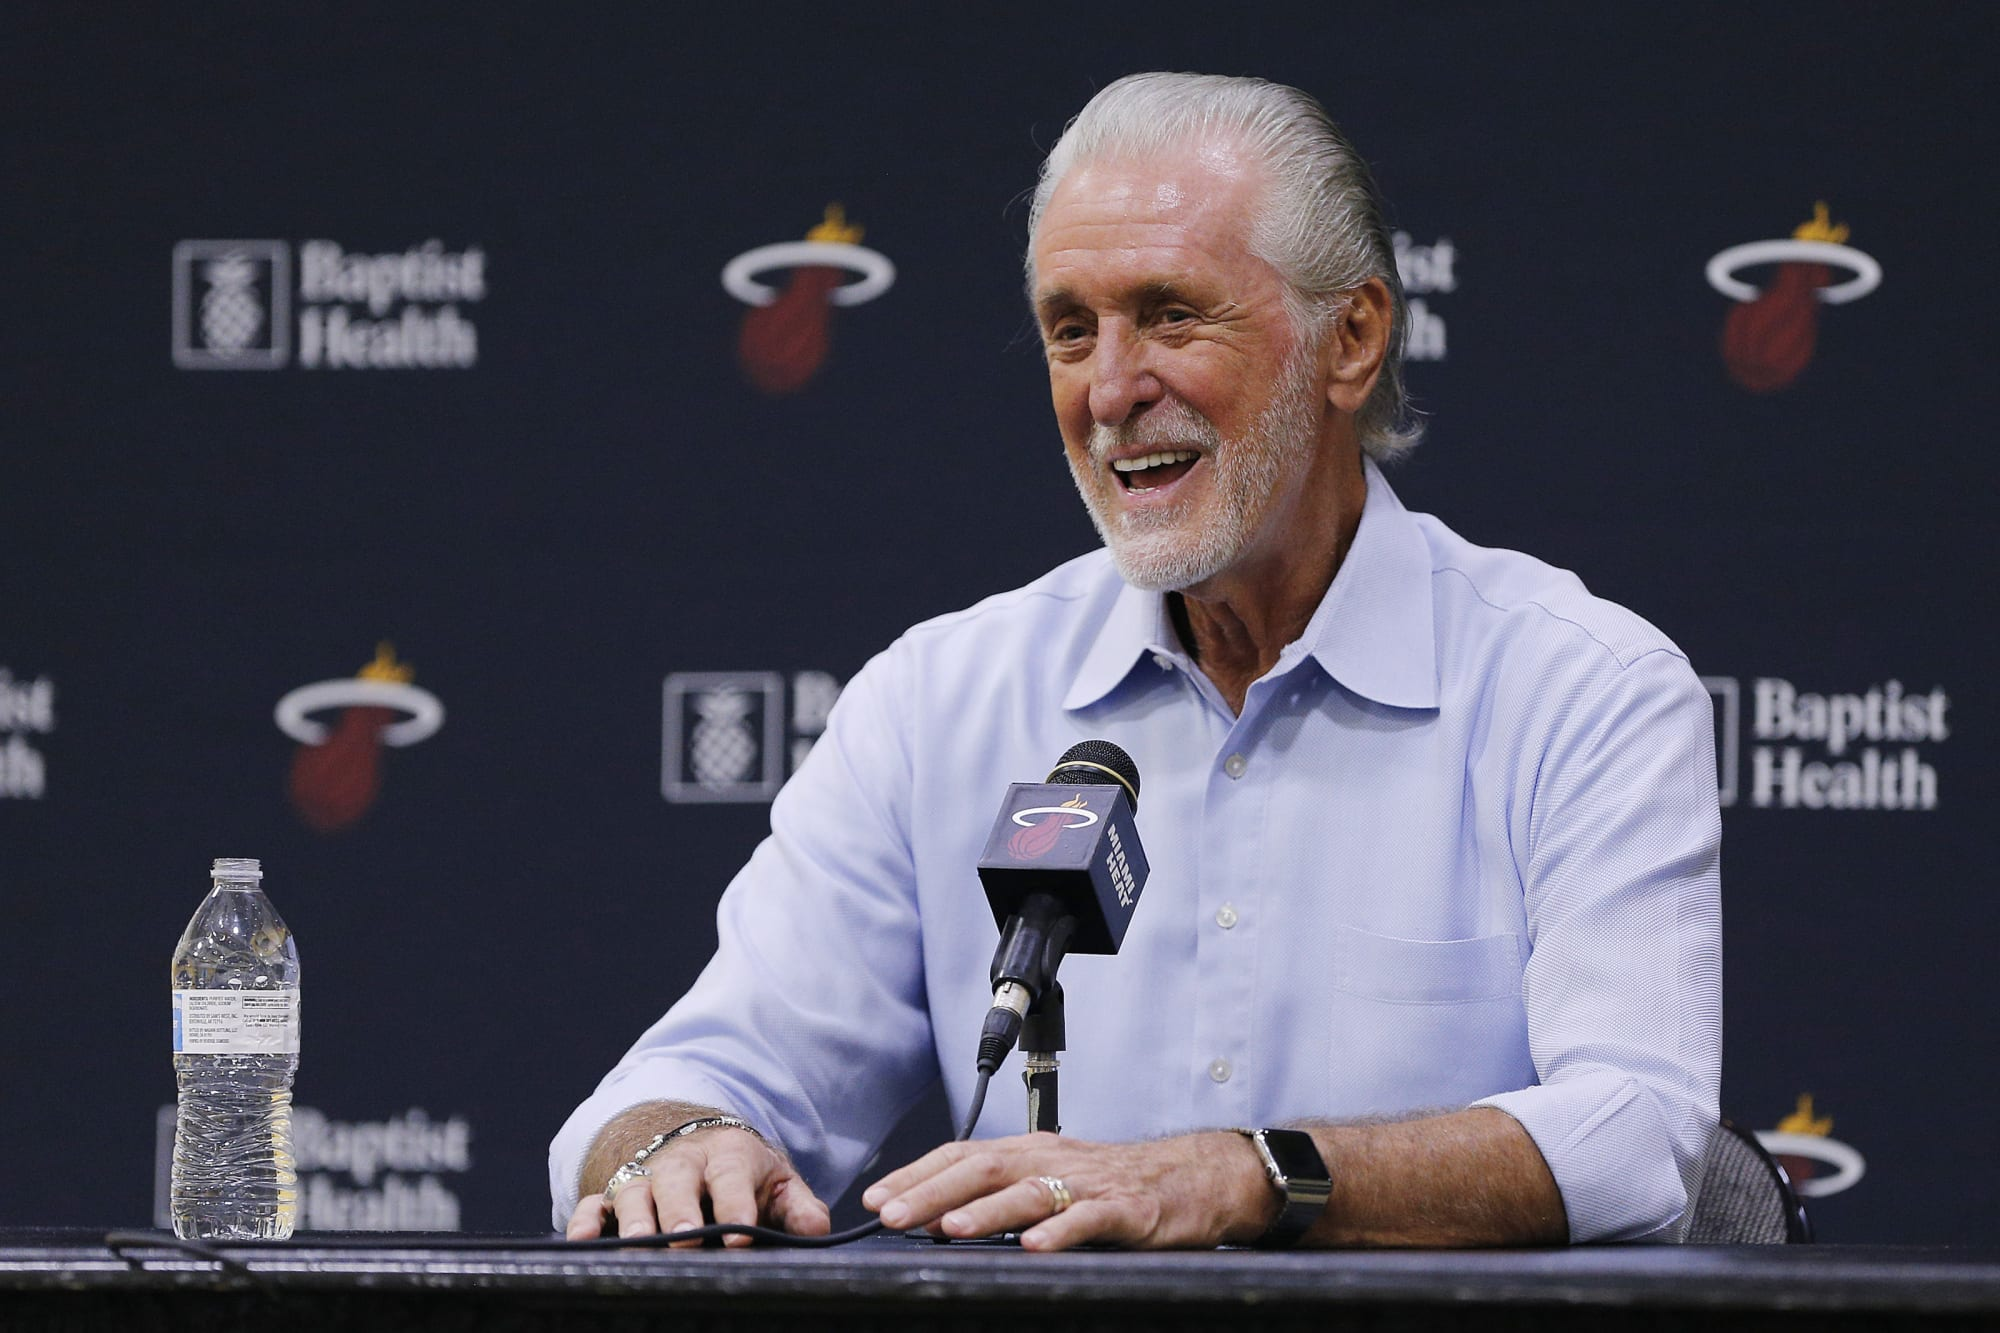 Miami Heat: Pat Riley and Erik Spoelstra aren't on the same page